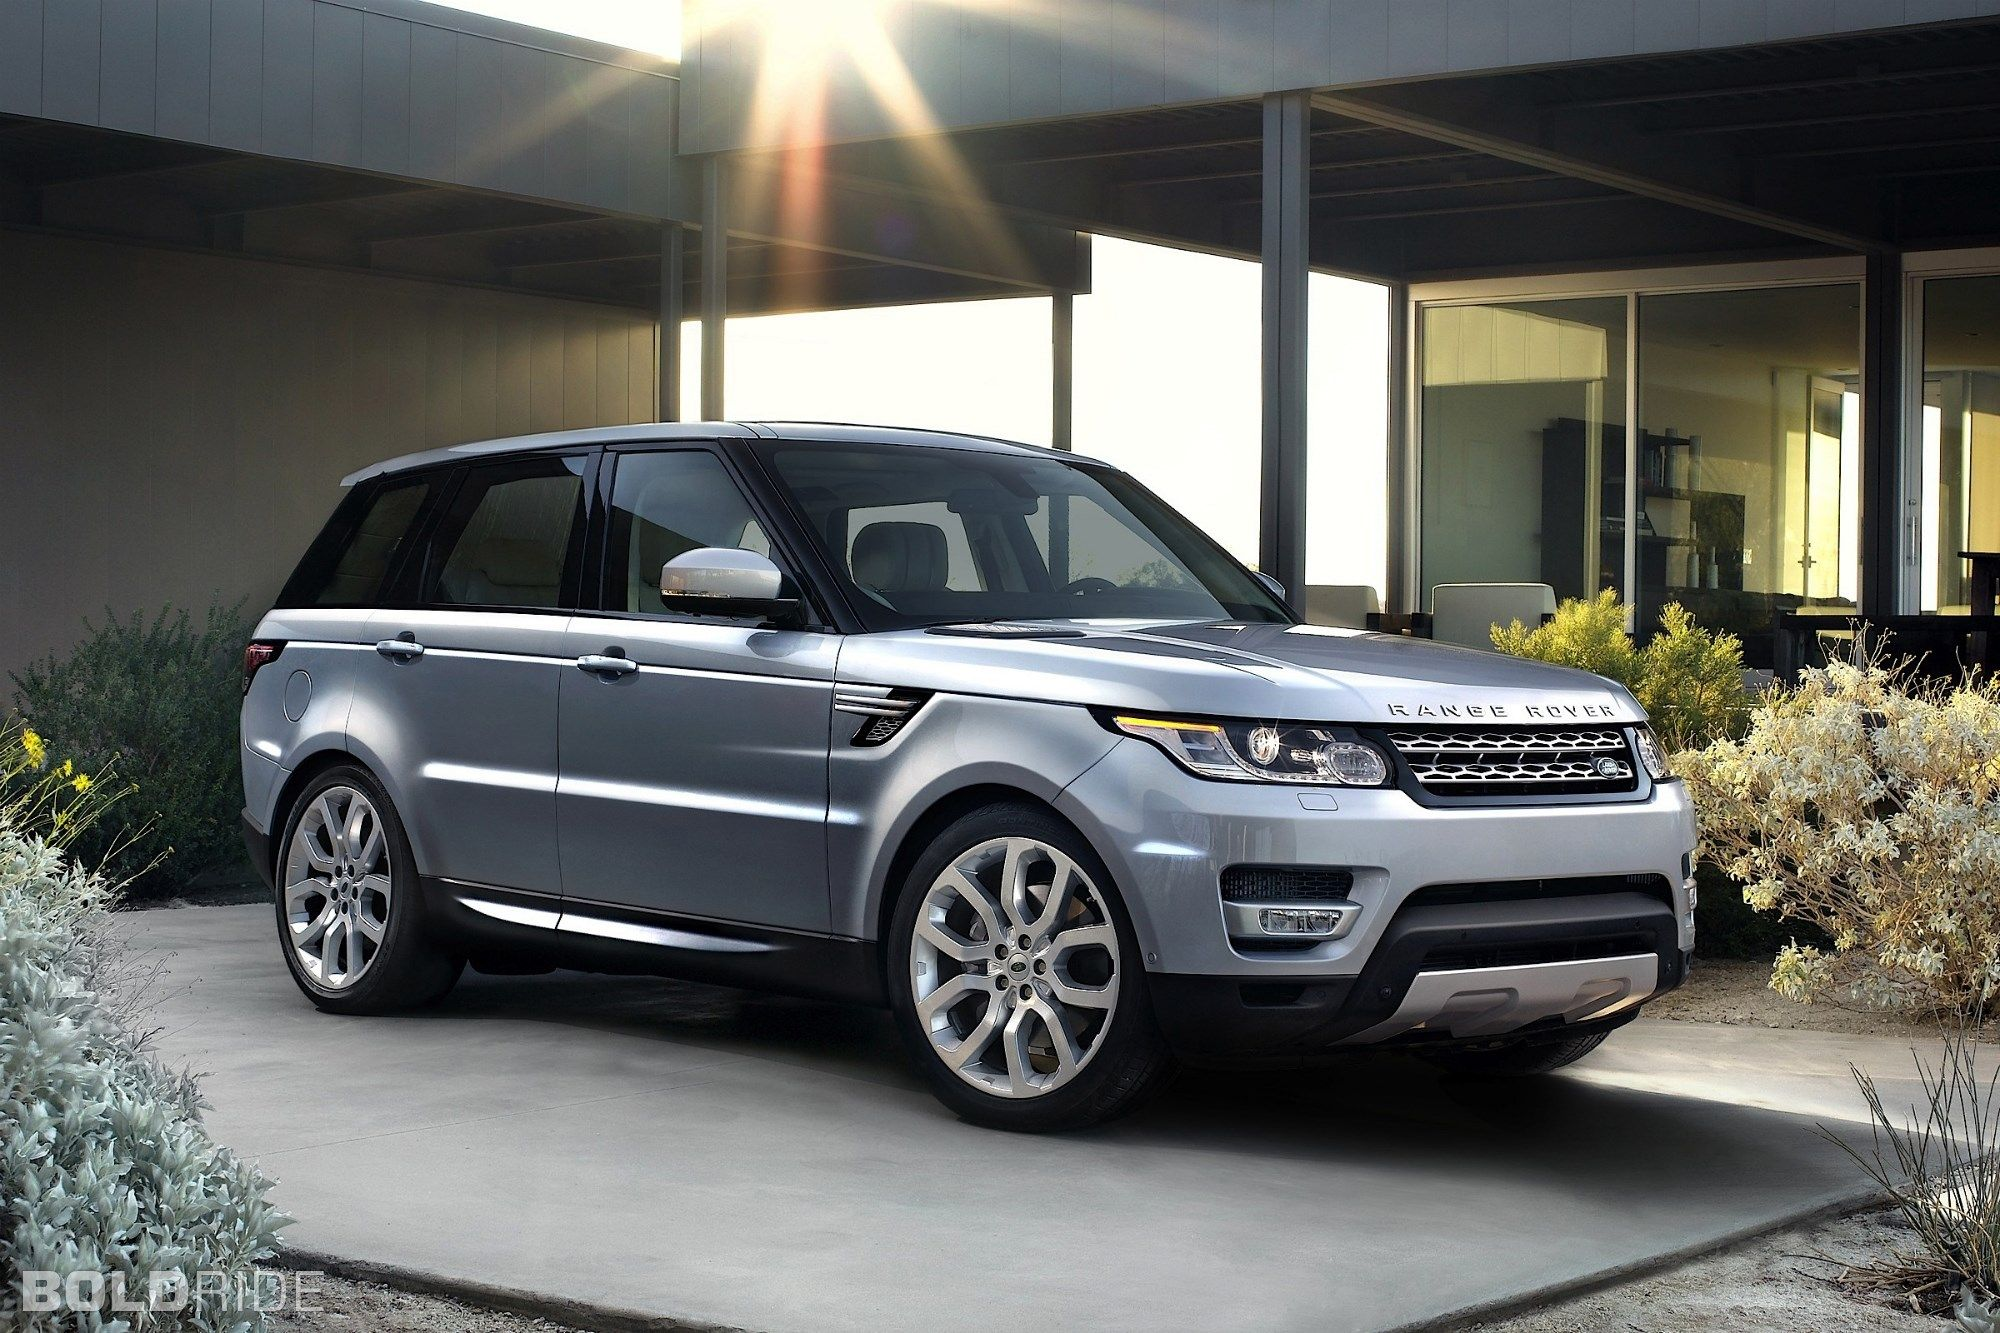 Terrific range rover sport wallpaper